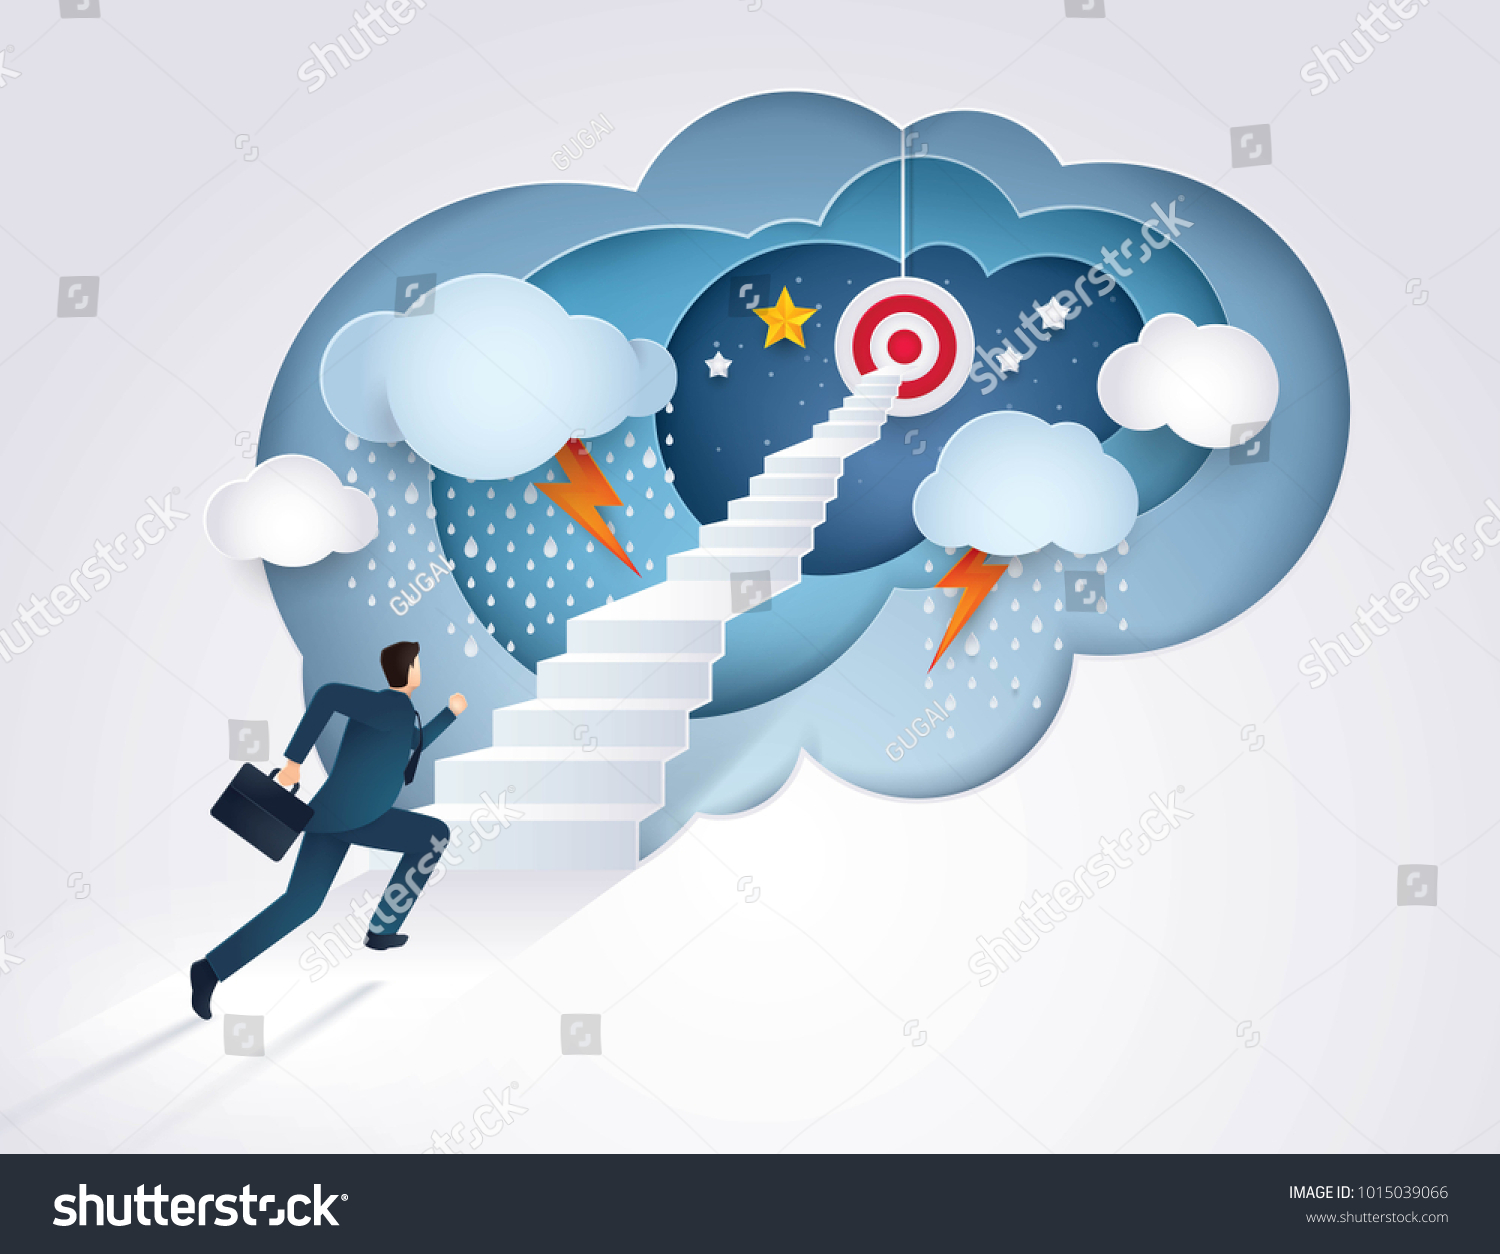 Businessman running up stairway to the target, Challenge, Trouble, obstacles, Path to the goal, Business concept growth to success, Creative ideas, Reach the target, Paper art vector and illustration